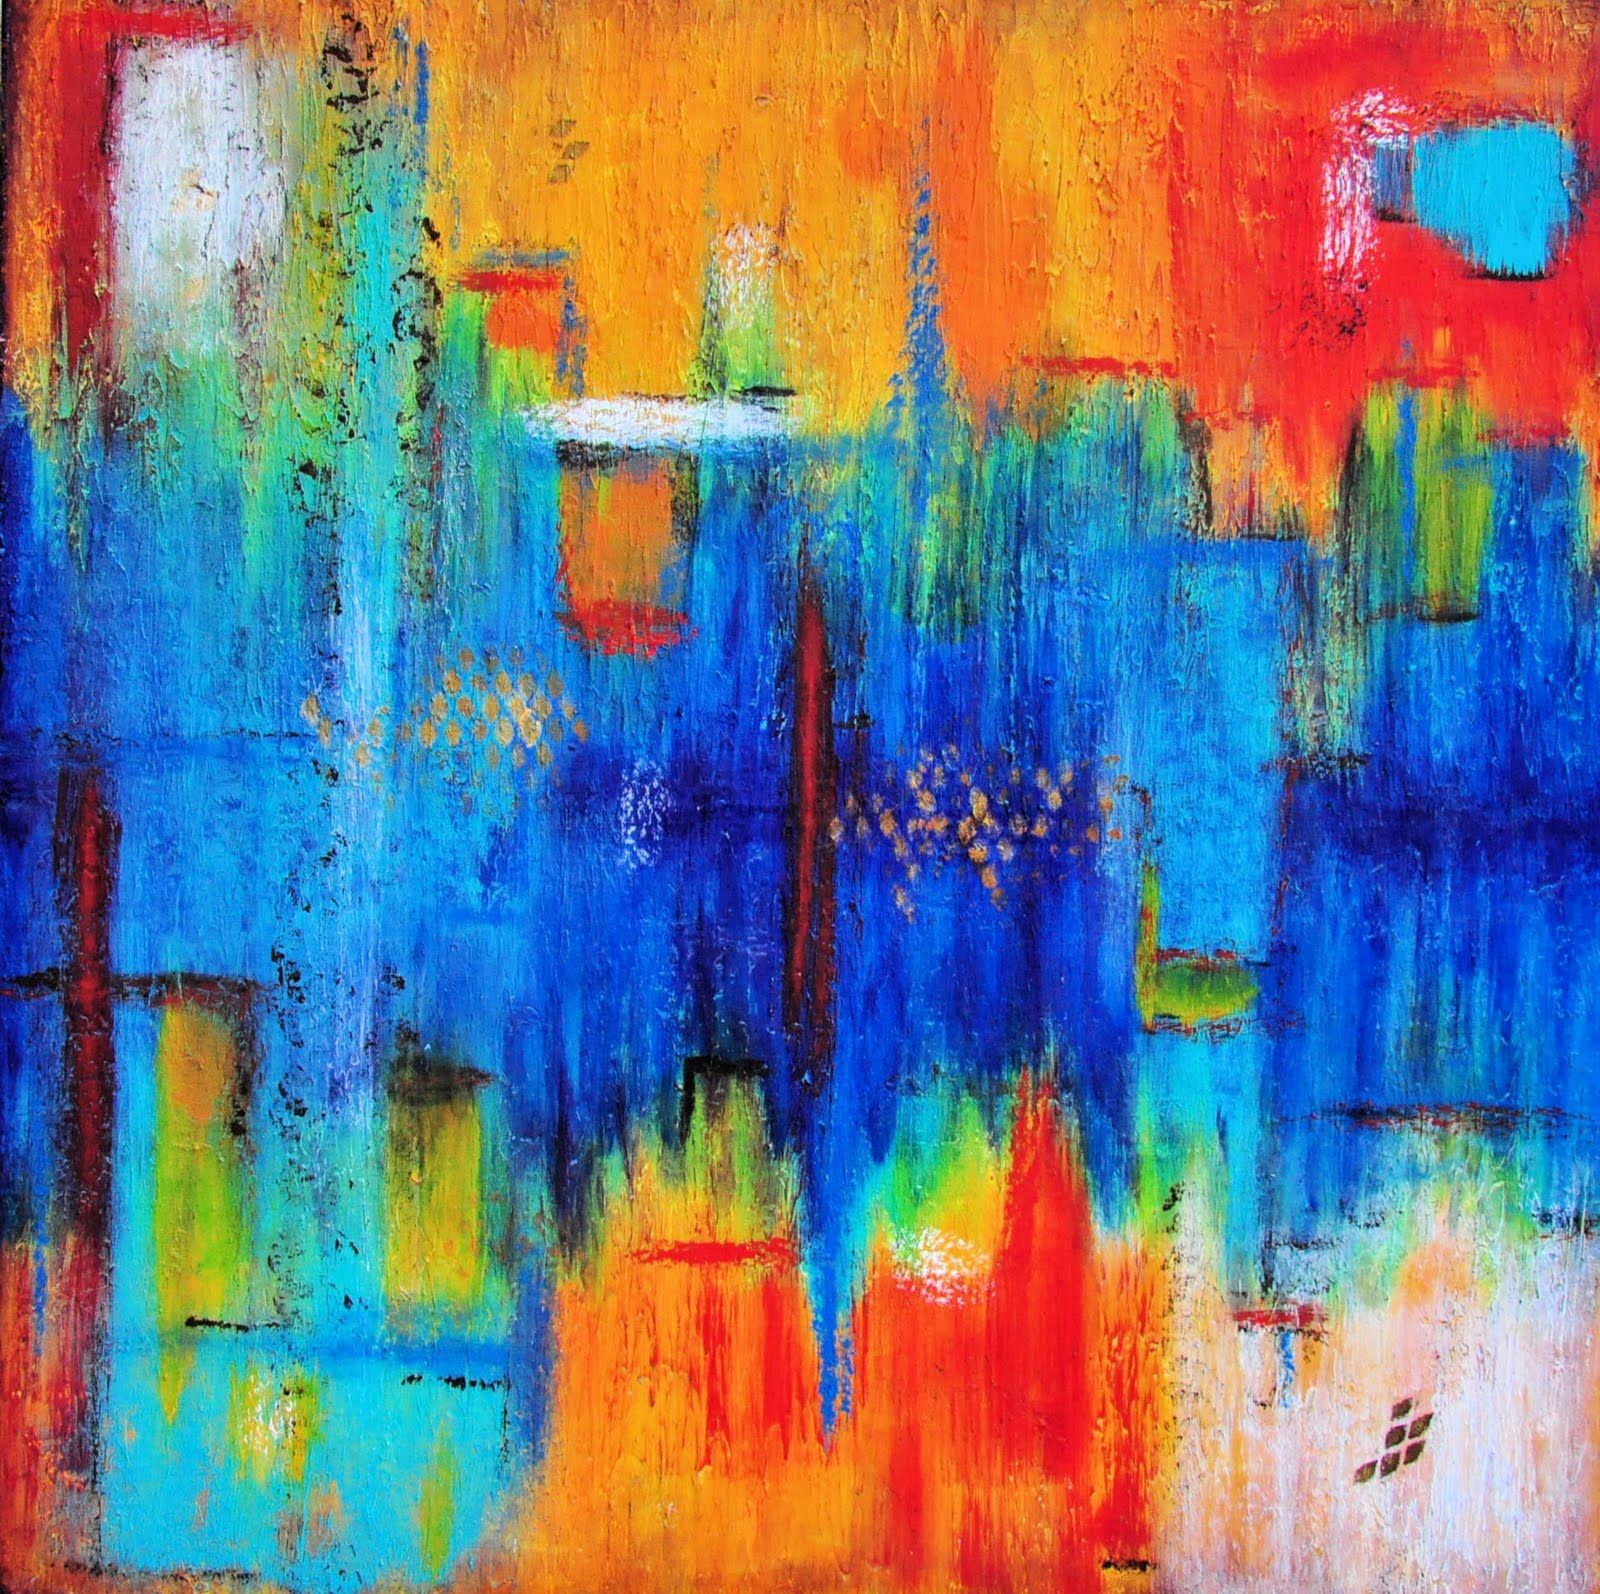 Red Yellow And Green Abstract Art Immersion 2 Blue White Layered Acrylic